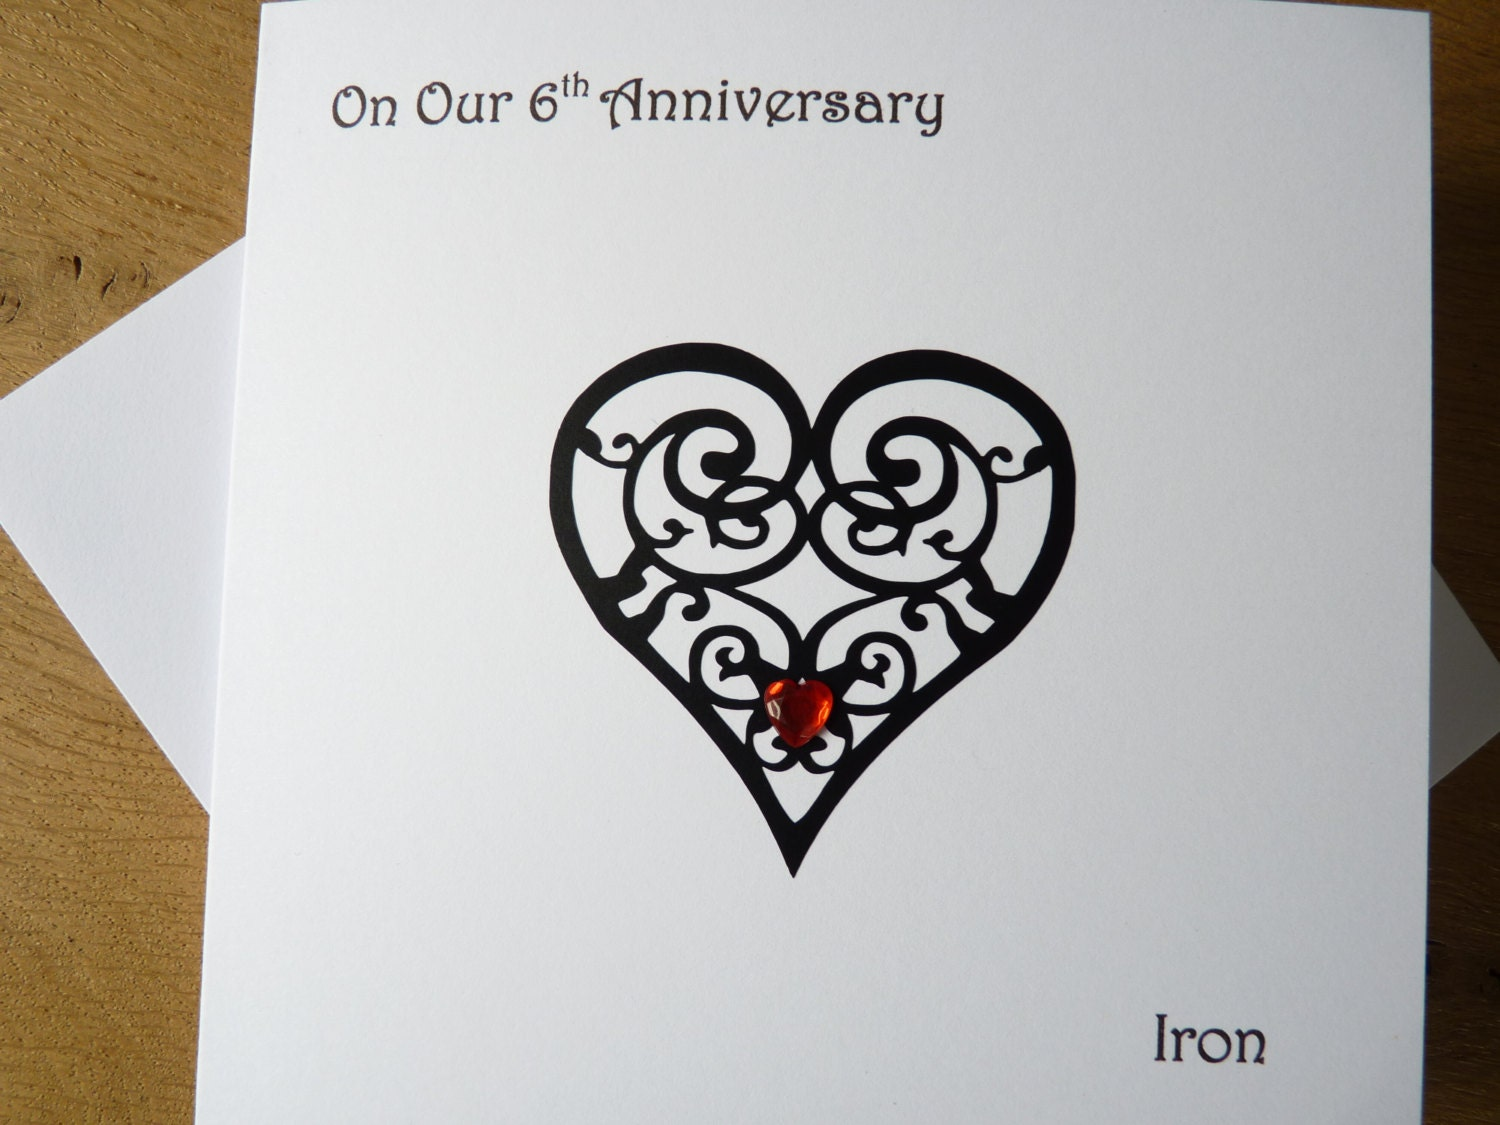 Wedding Anniversary Gifts 6 Years: 6th Wedding Anniversary Card Iron 6th Anniversary Gift